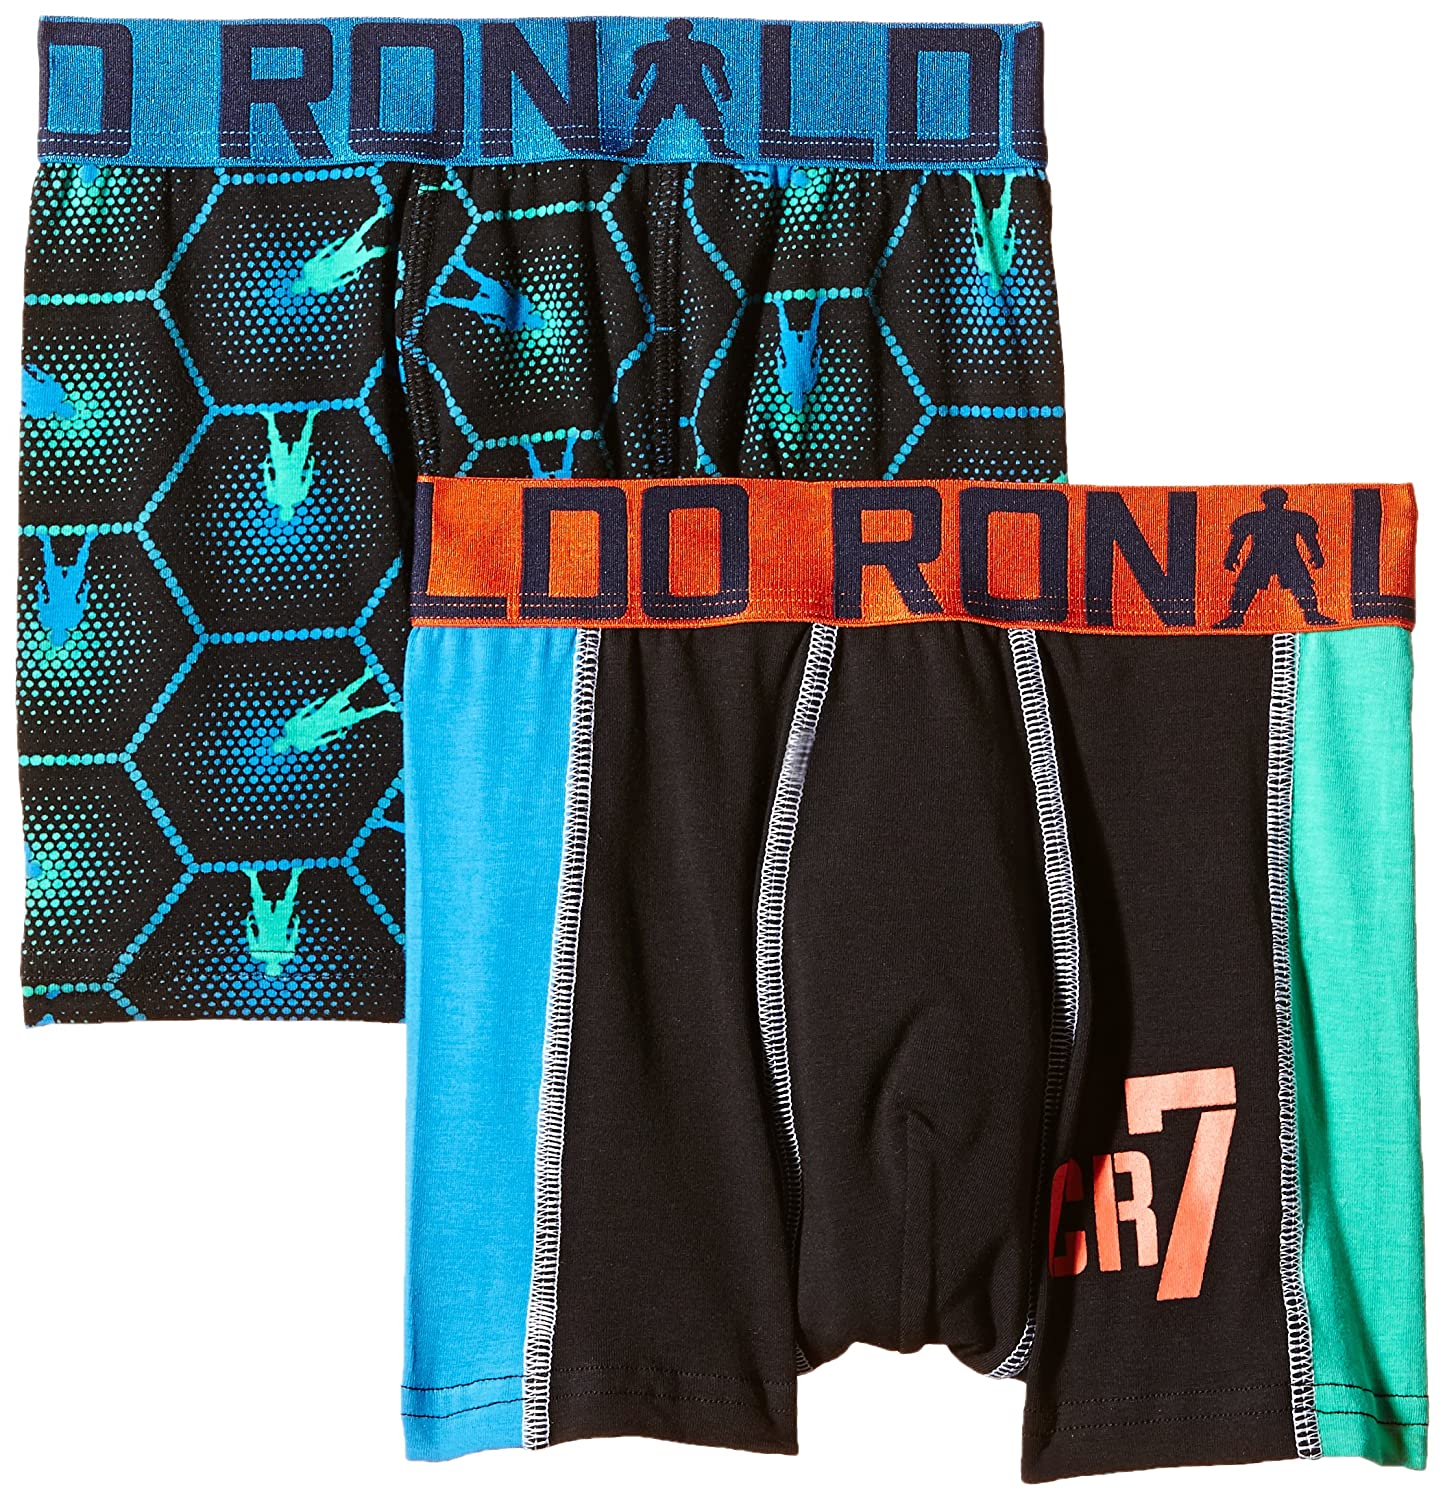 CR7 Cristiano Ronaldo Boys' Tight-Fit Boxers Boys Line Trunks Pack of 2 8400 5100127